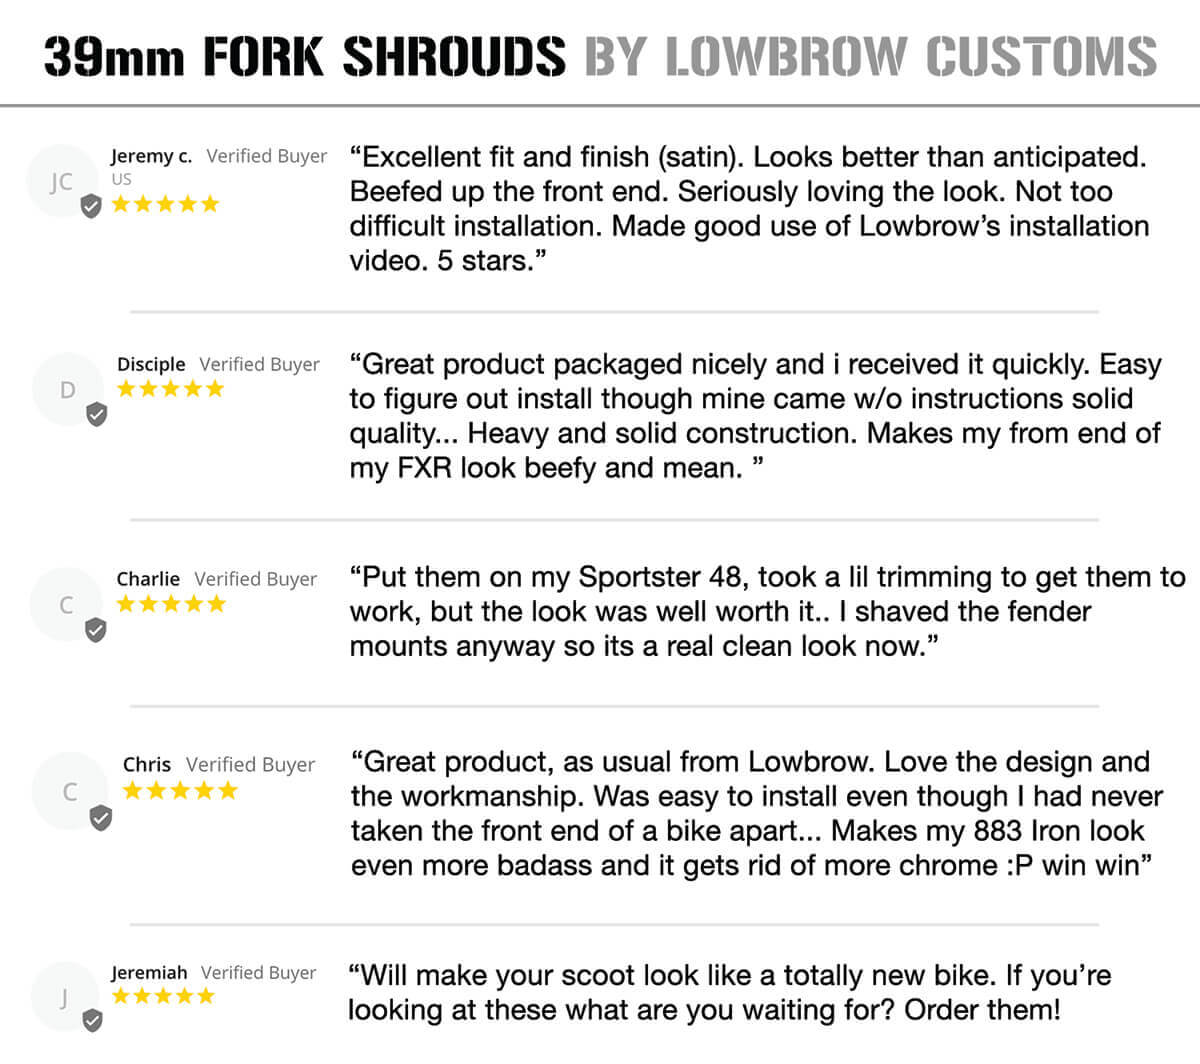 Lowbrow Customs 39mm Fork Shrouds review